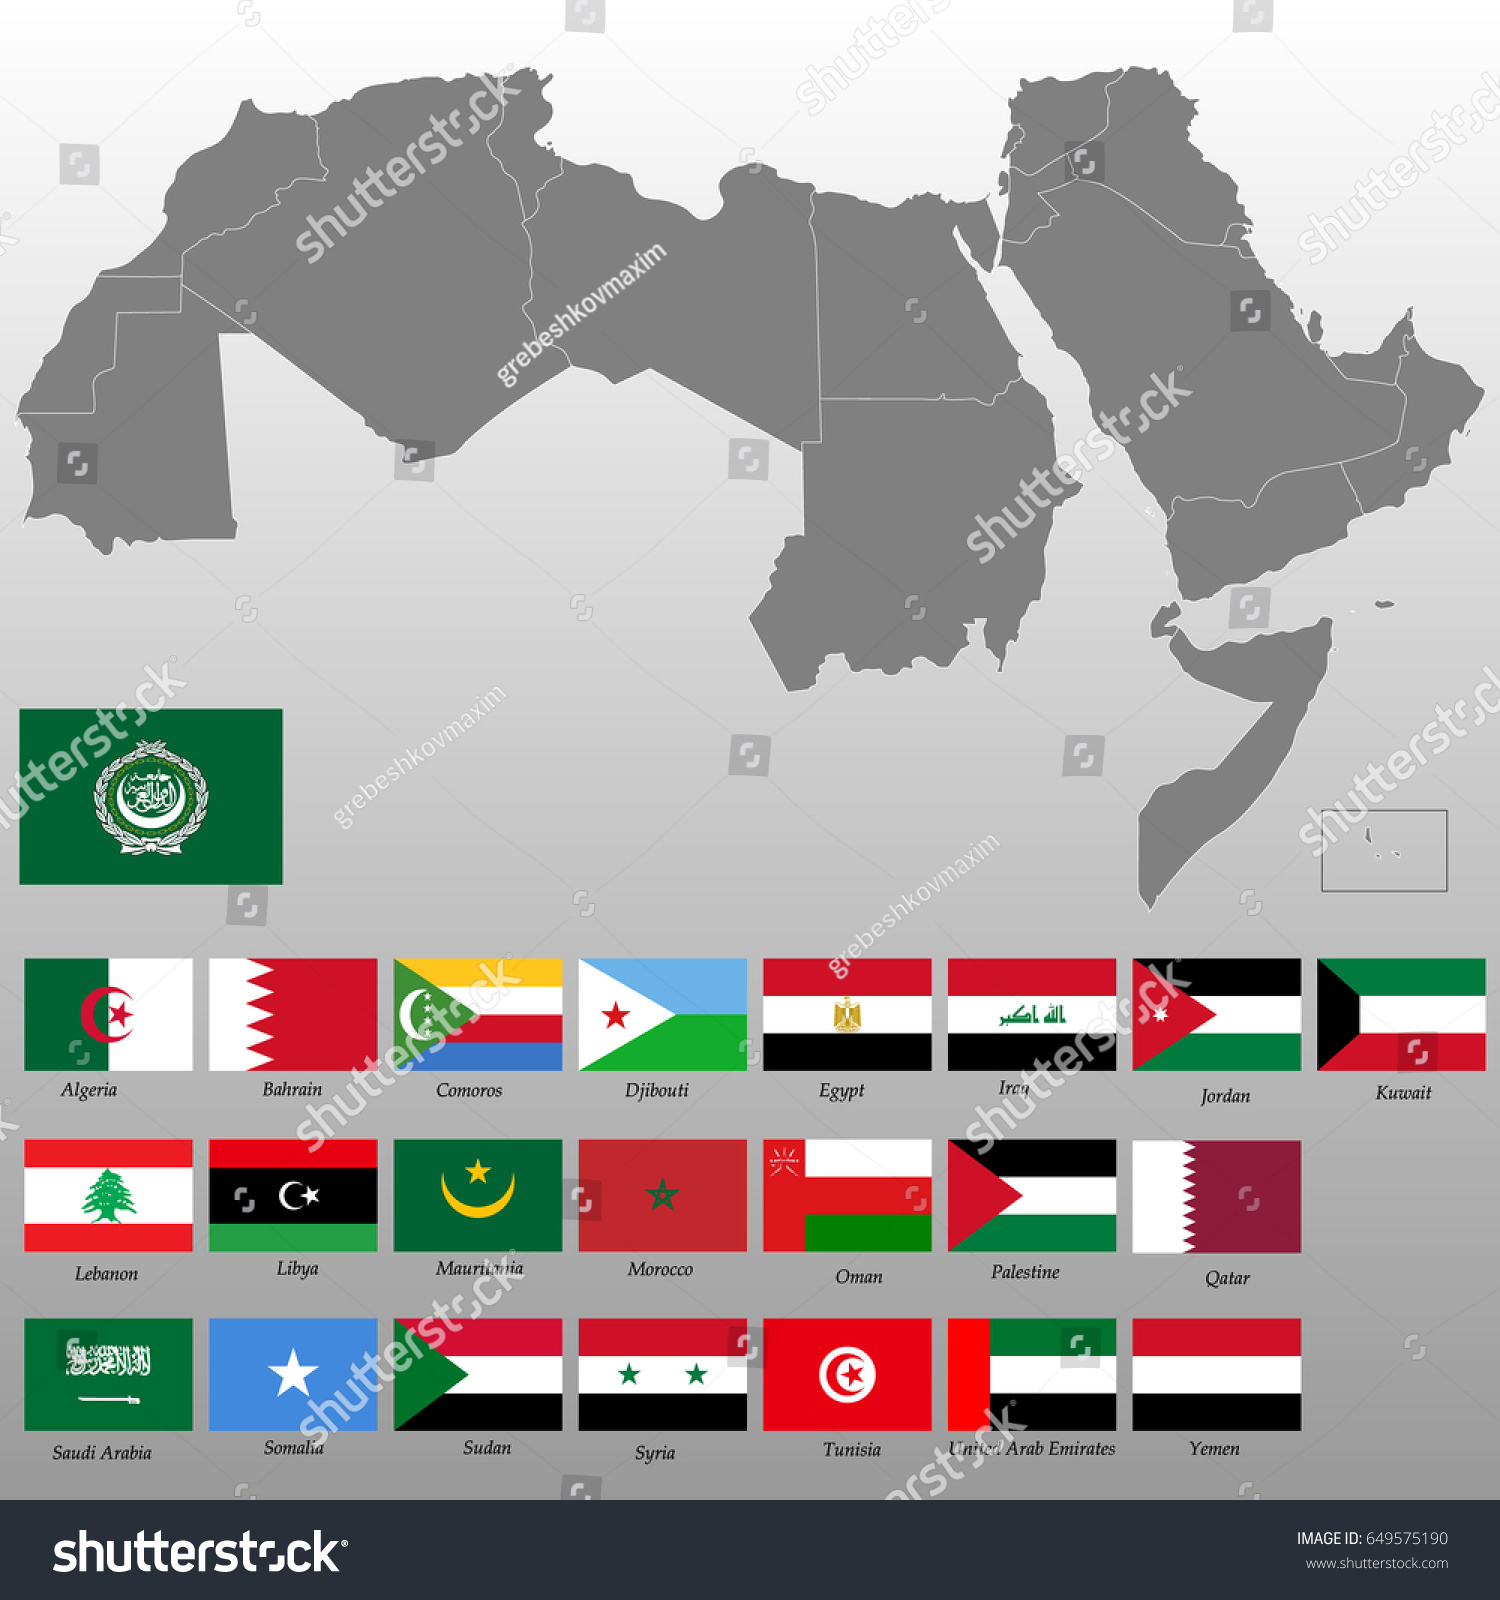 Picture of: High Quality Map Arab World Borders Stock Vector Royalty Free 649575190